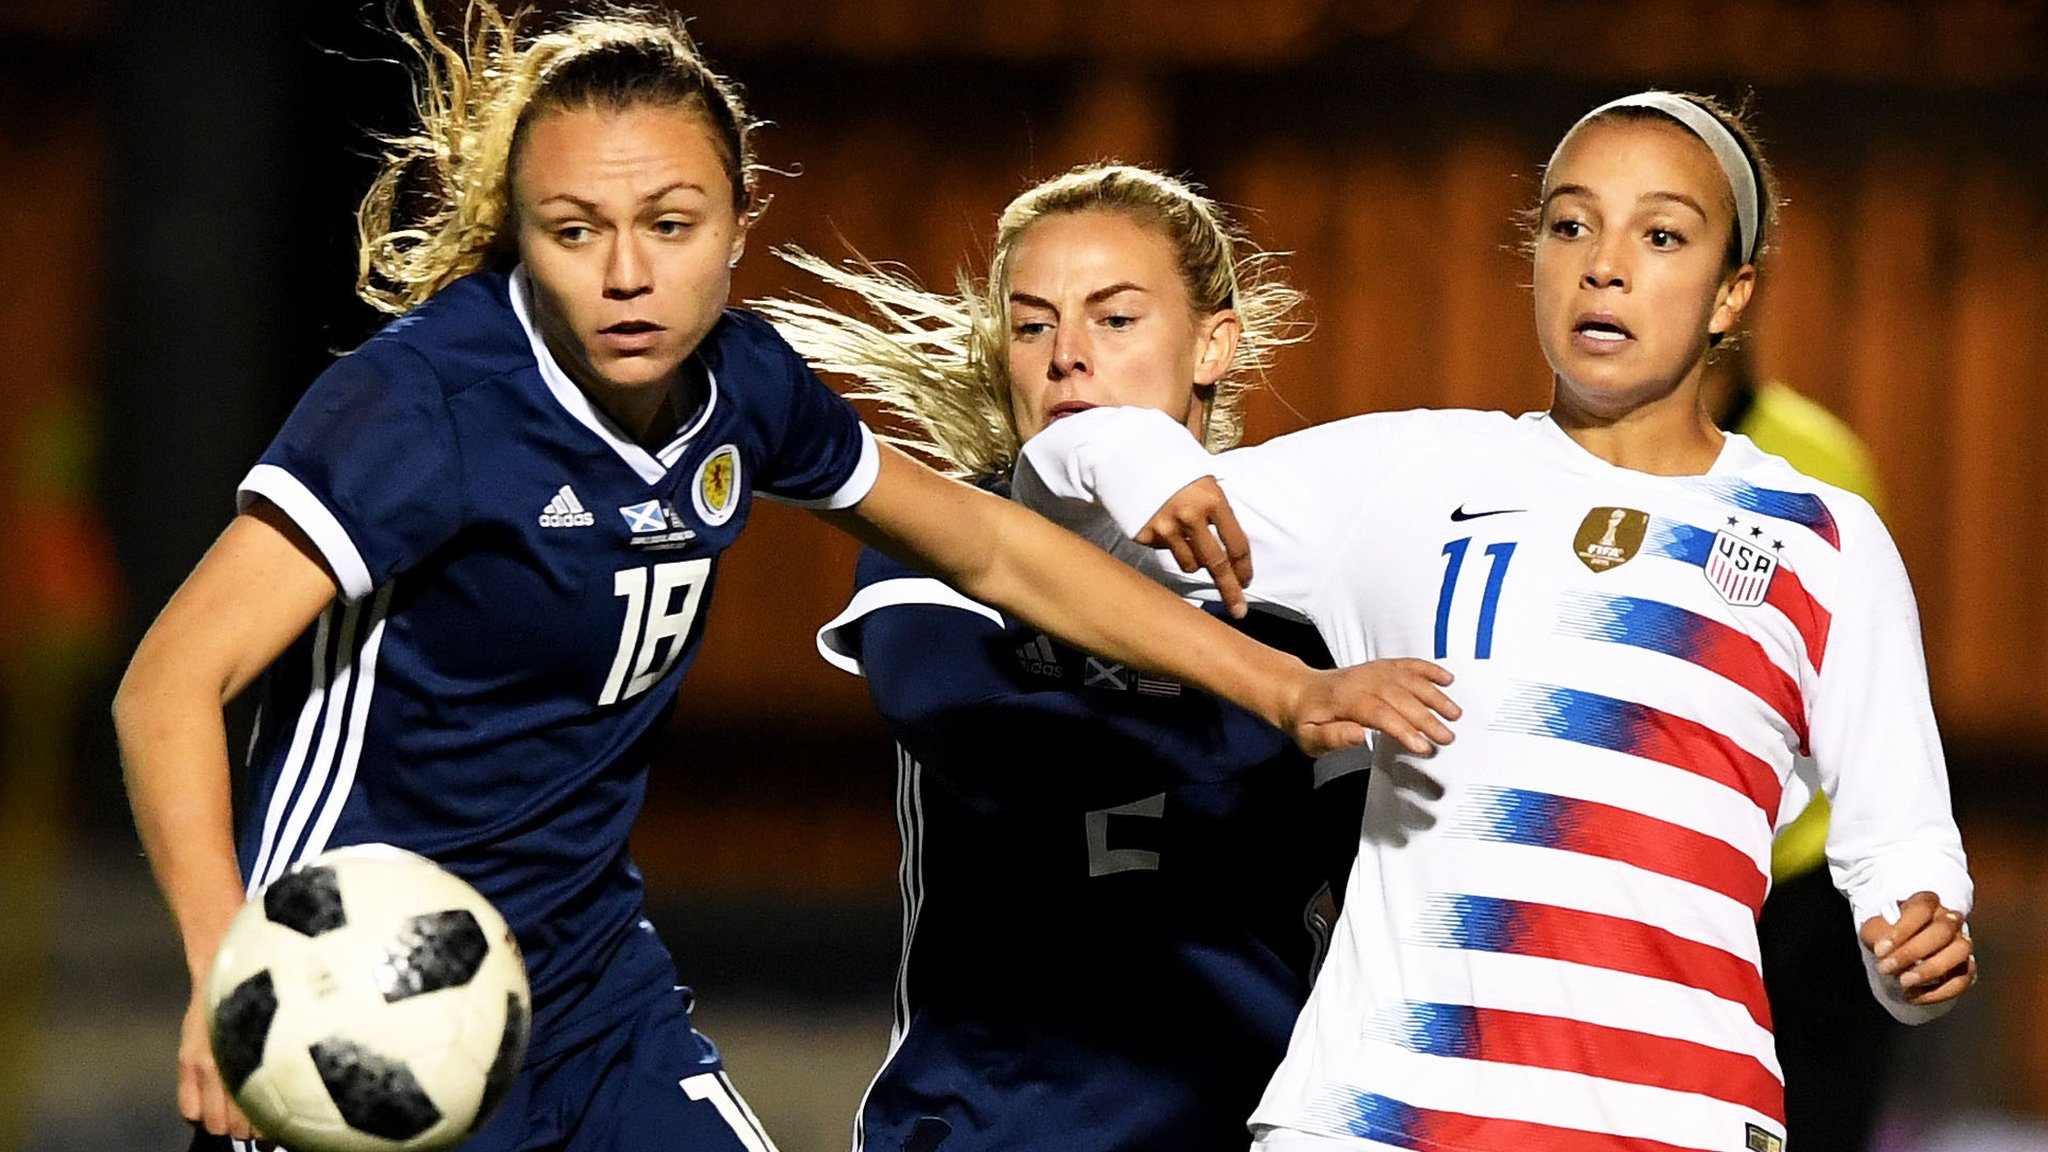 Scotland slip to narrow defeat against world champions USA